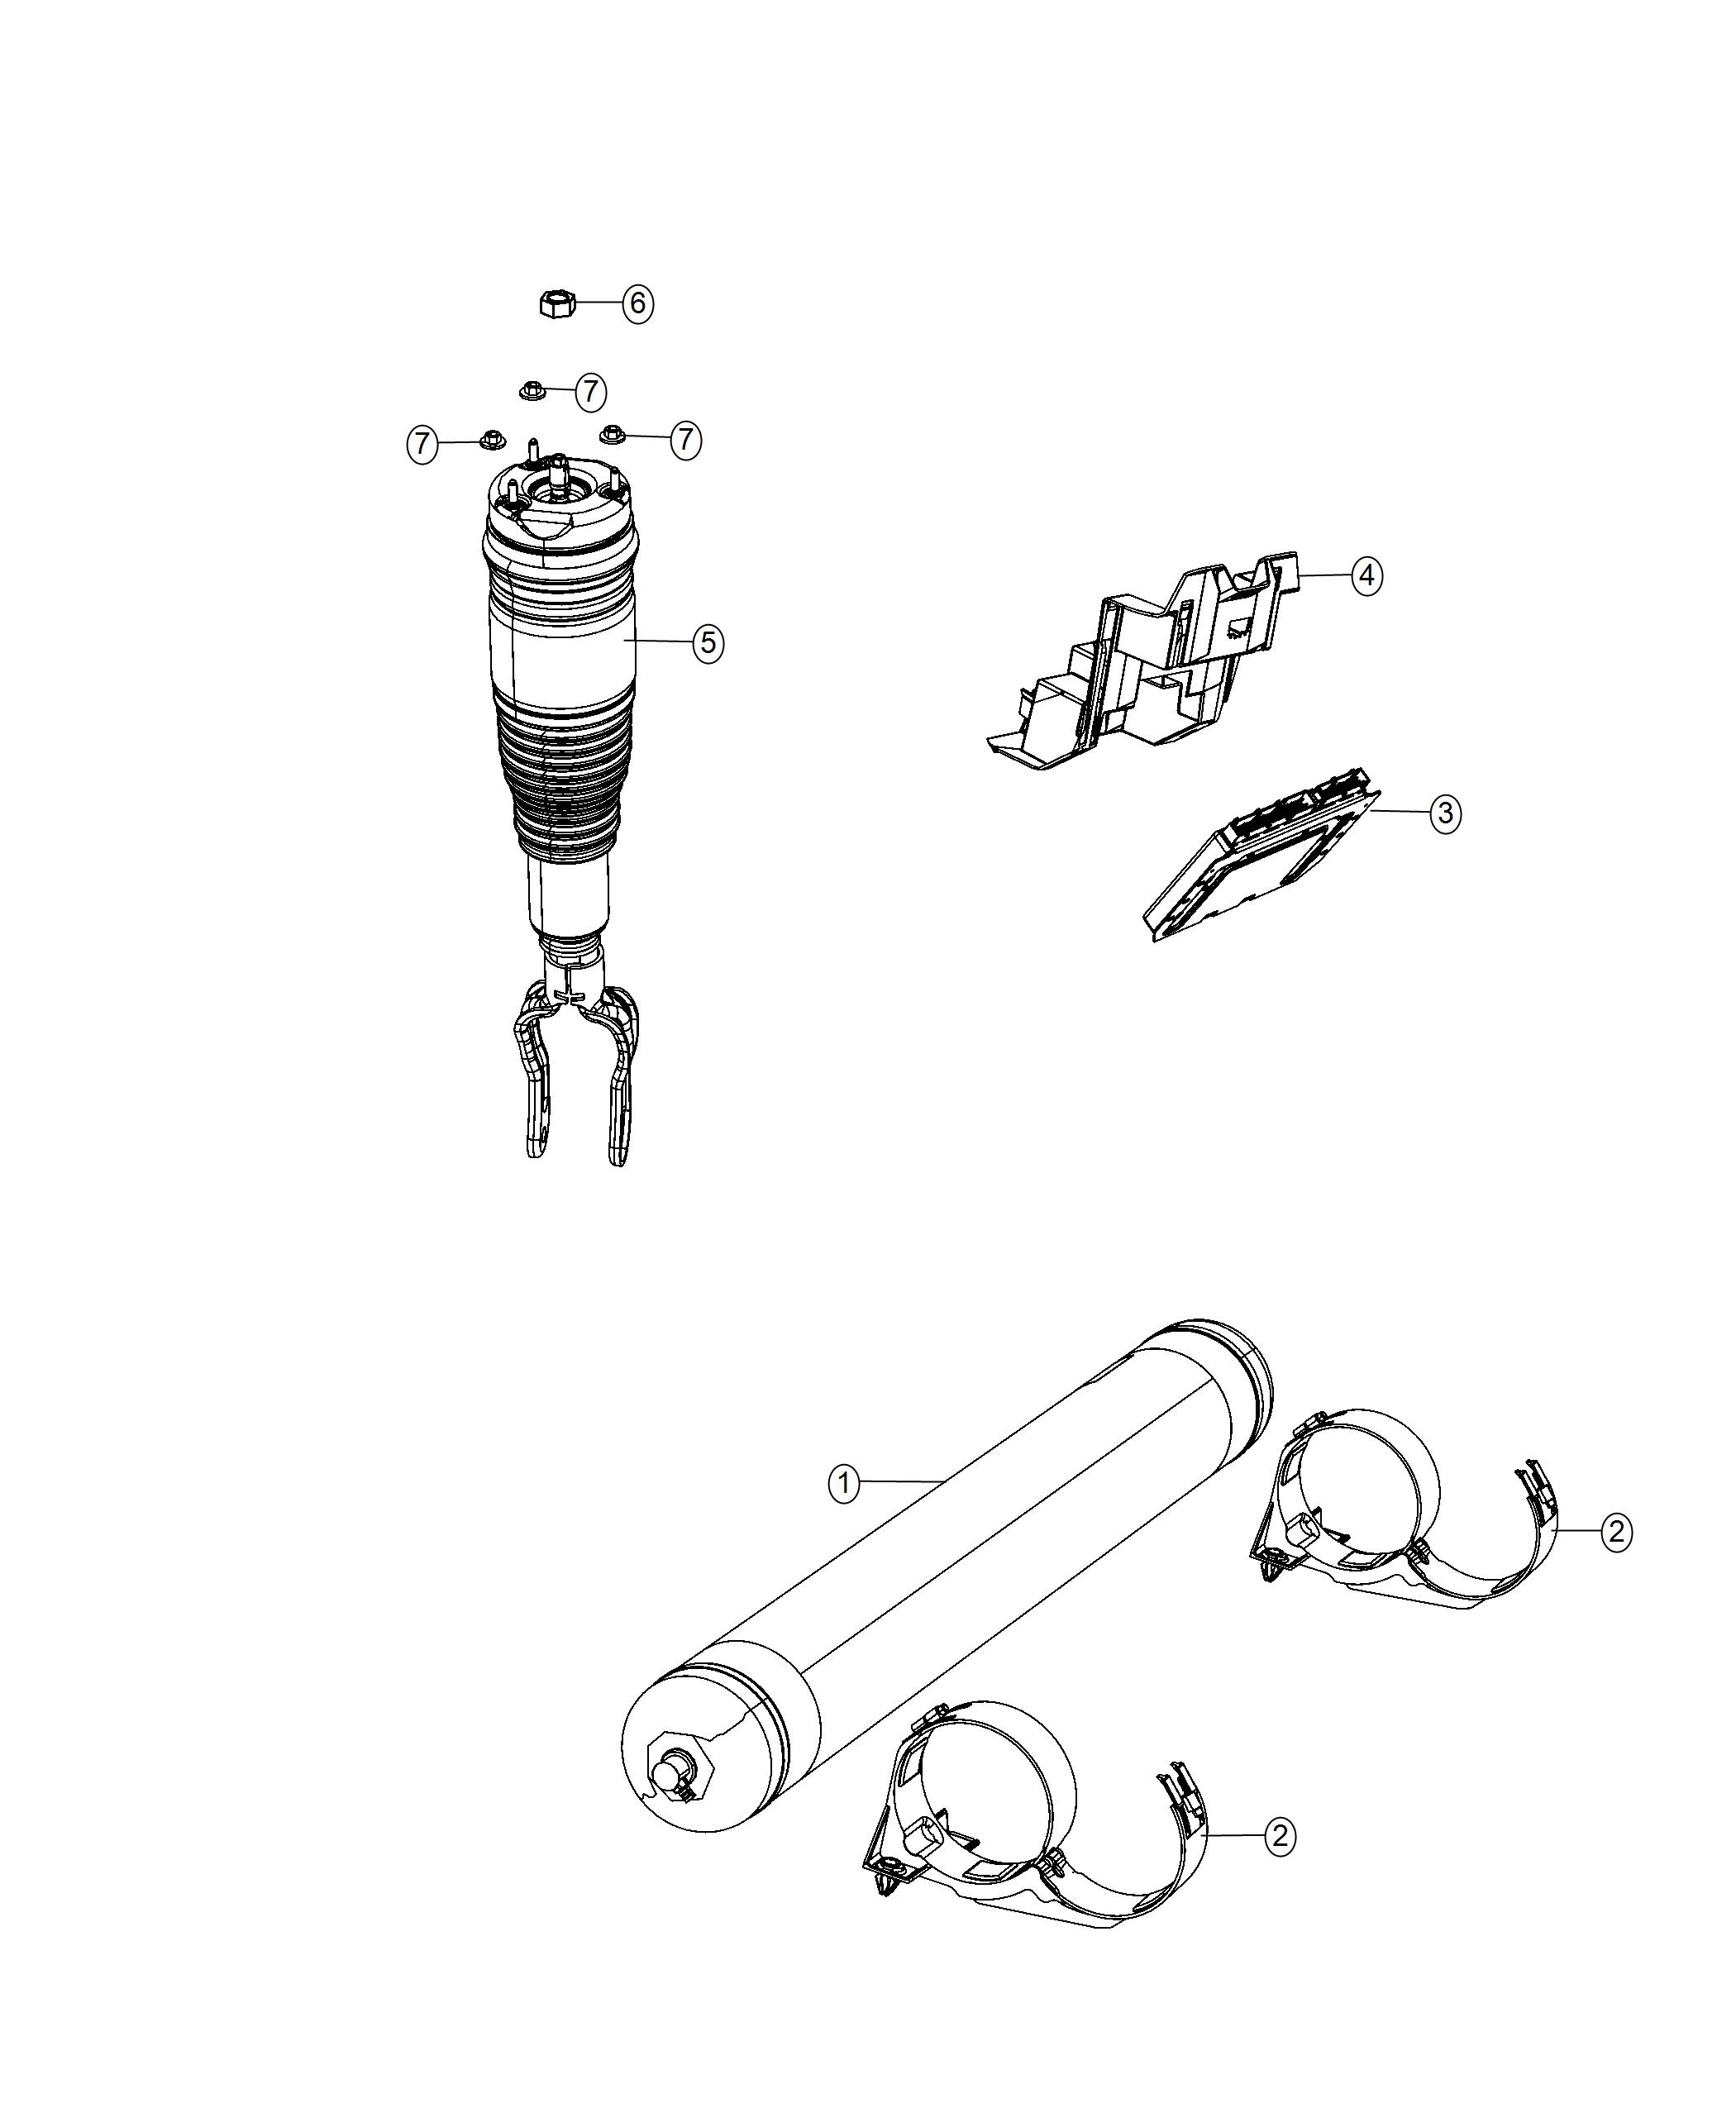 Jeep Grand Cherokee Used For Spring And Shock Assembly